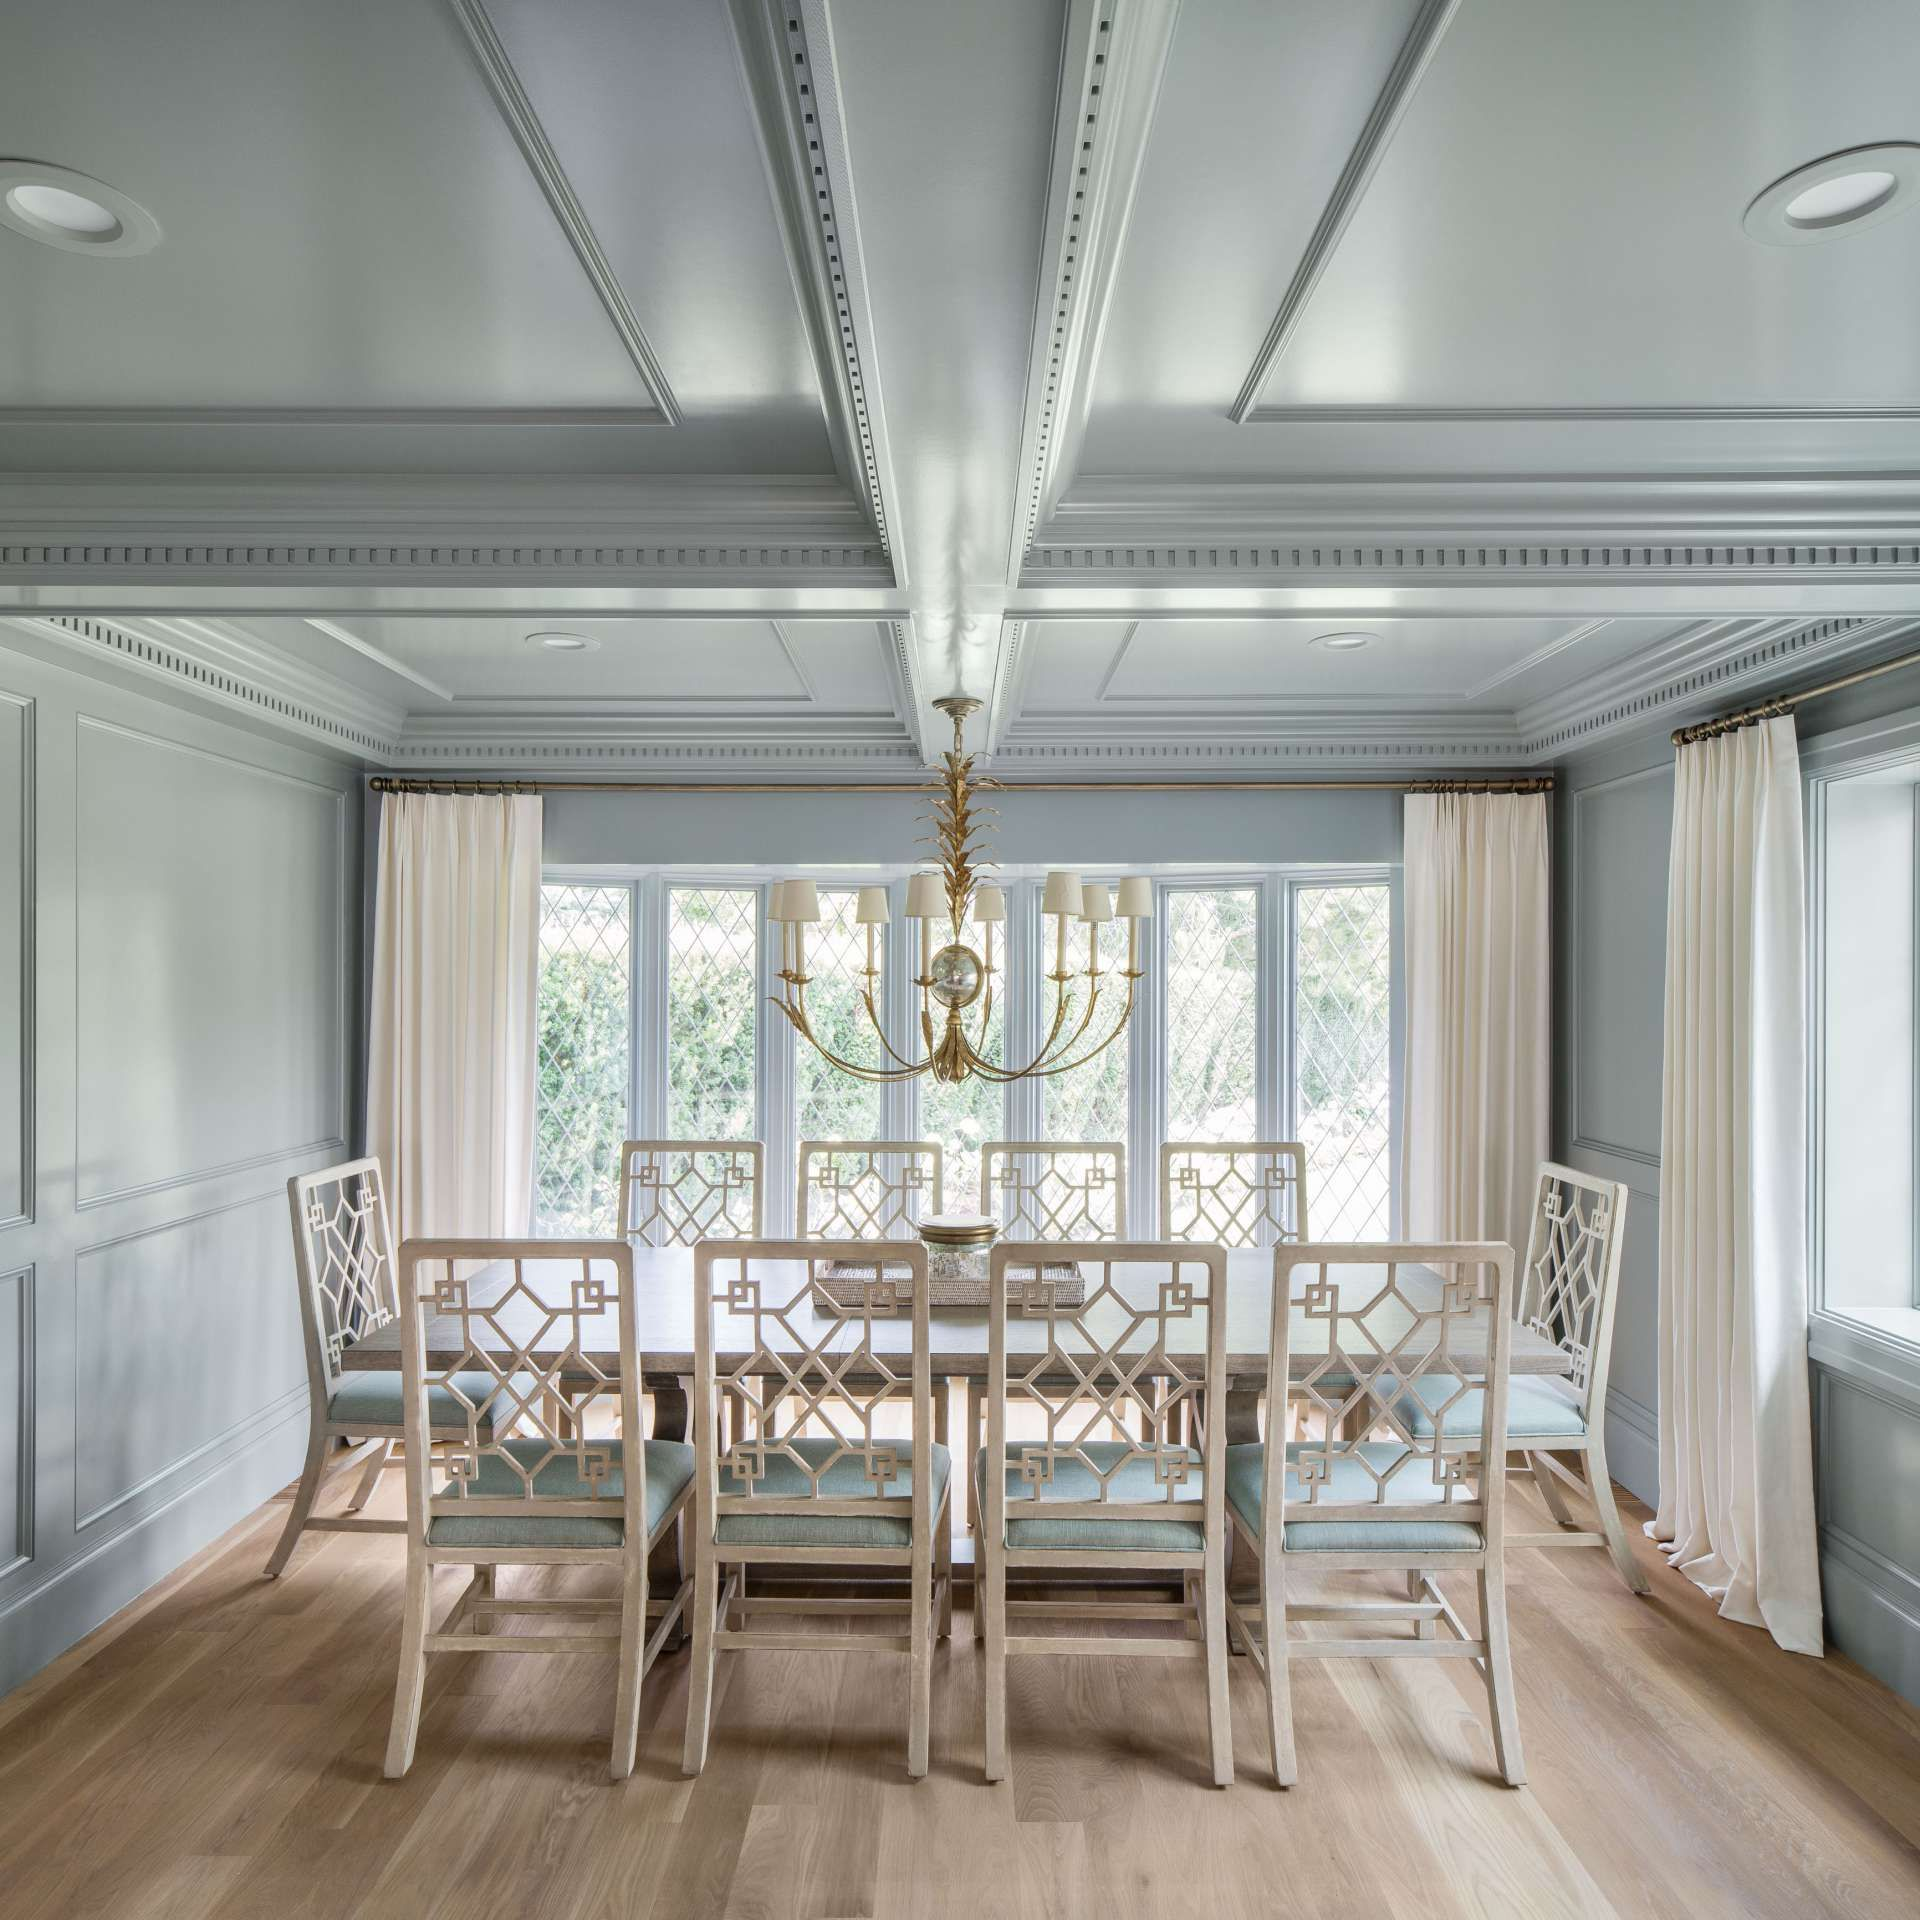 Key Interiors By Shinay Country Dining Room Design Ideas: Gorgeous Color In The Dining Room Of This Fox Group Tudor